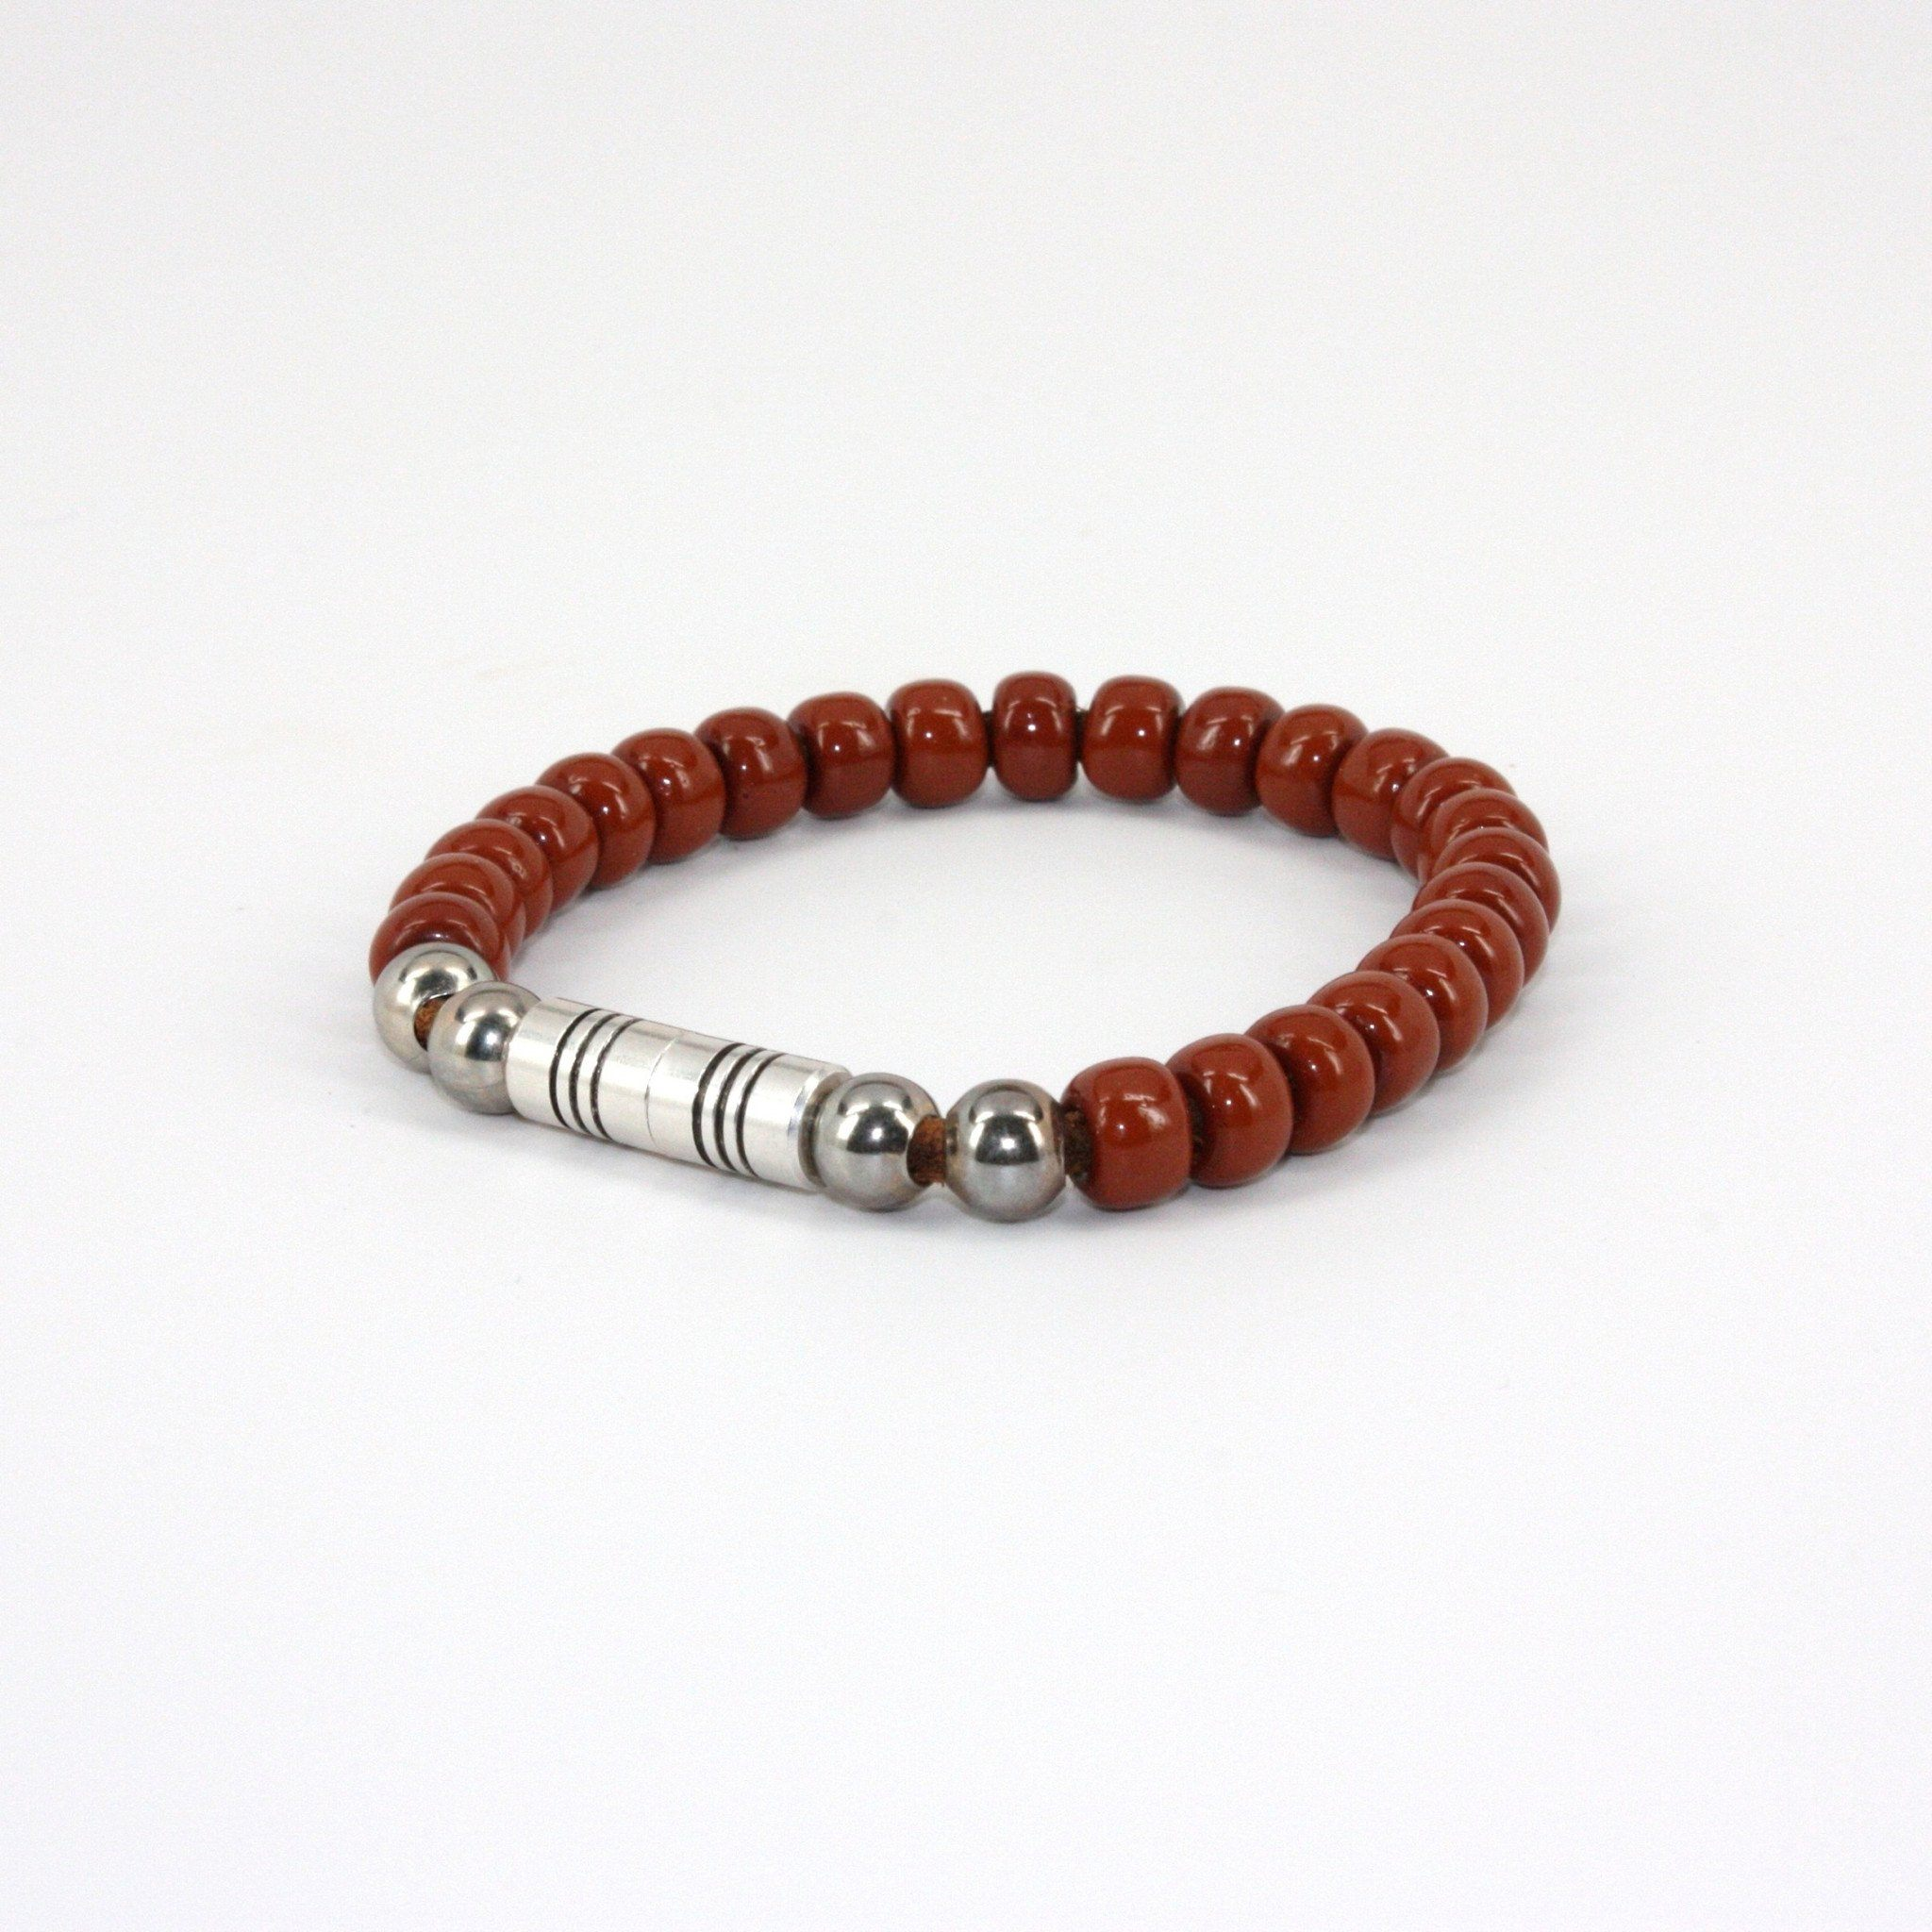 Czech Glass Beads on Leather Bracelet - Med. Brown,BRACELET,Gent Row, | GentRow.com